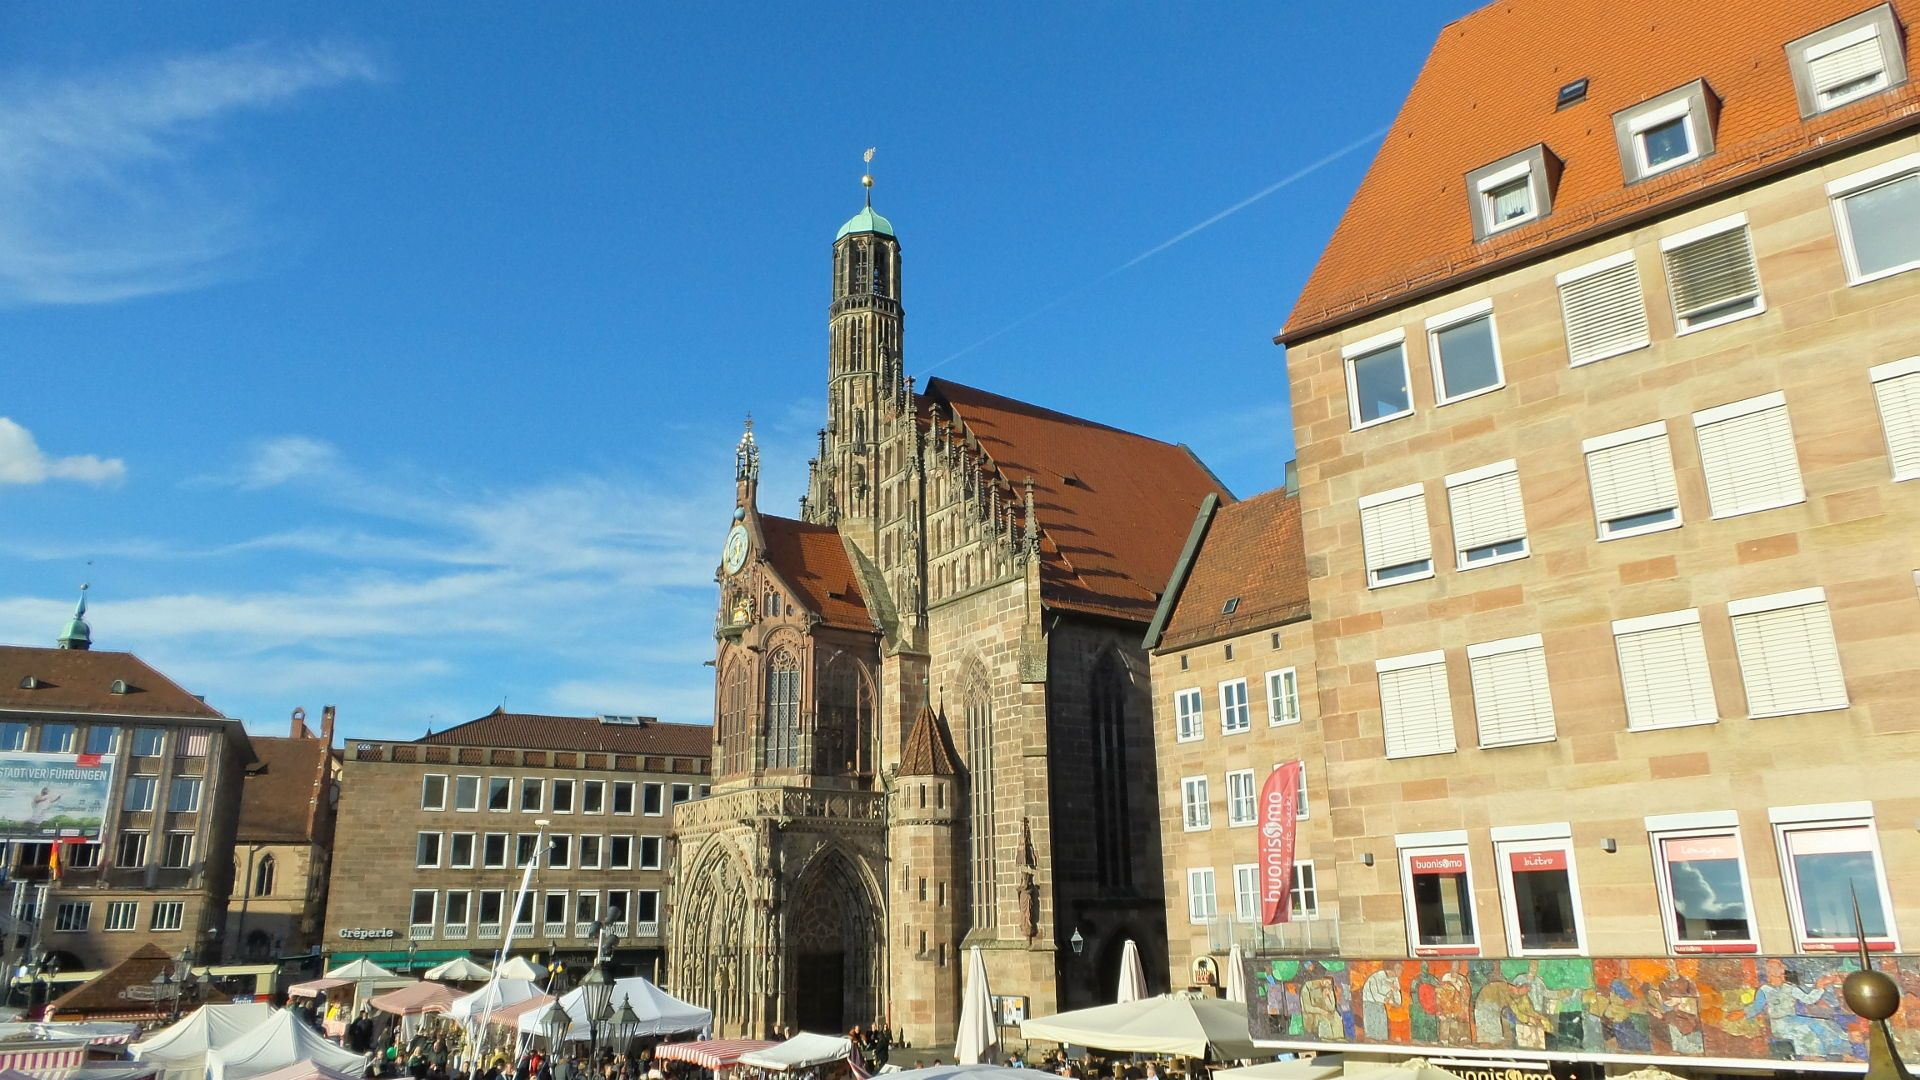 Church of Our Lady or Frauenkirche Nürnberg in NUremberg